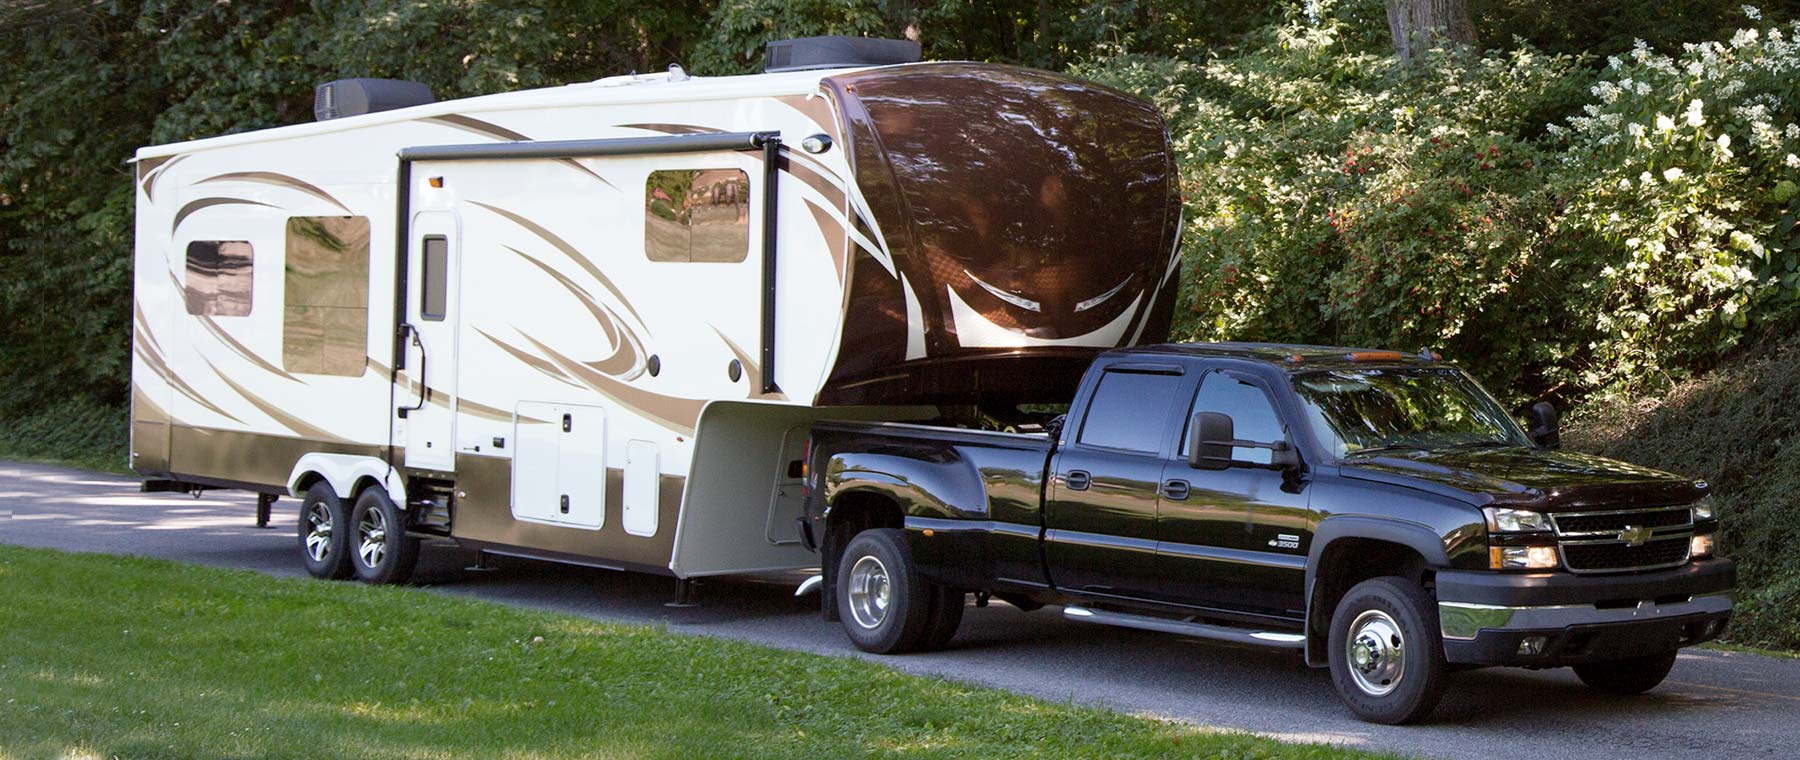 Need To Rent A Car Trailer